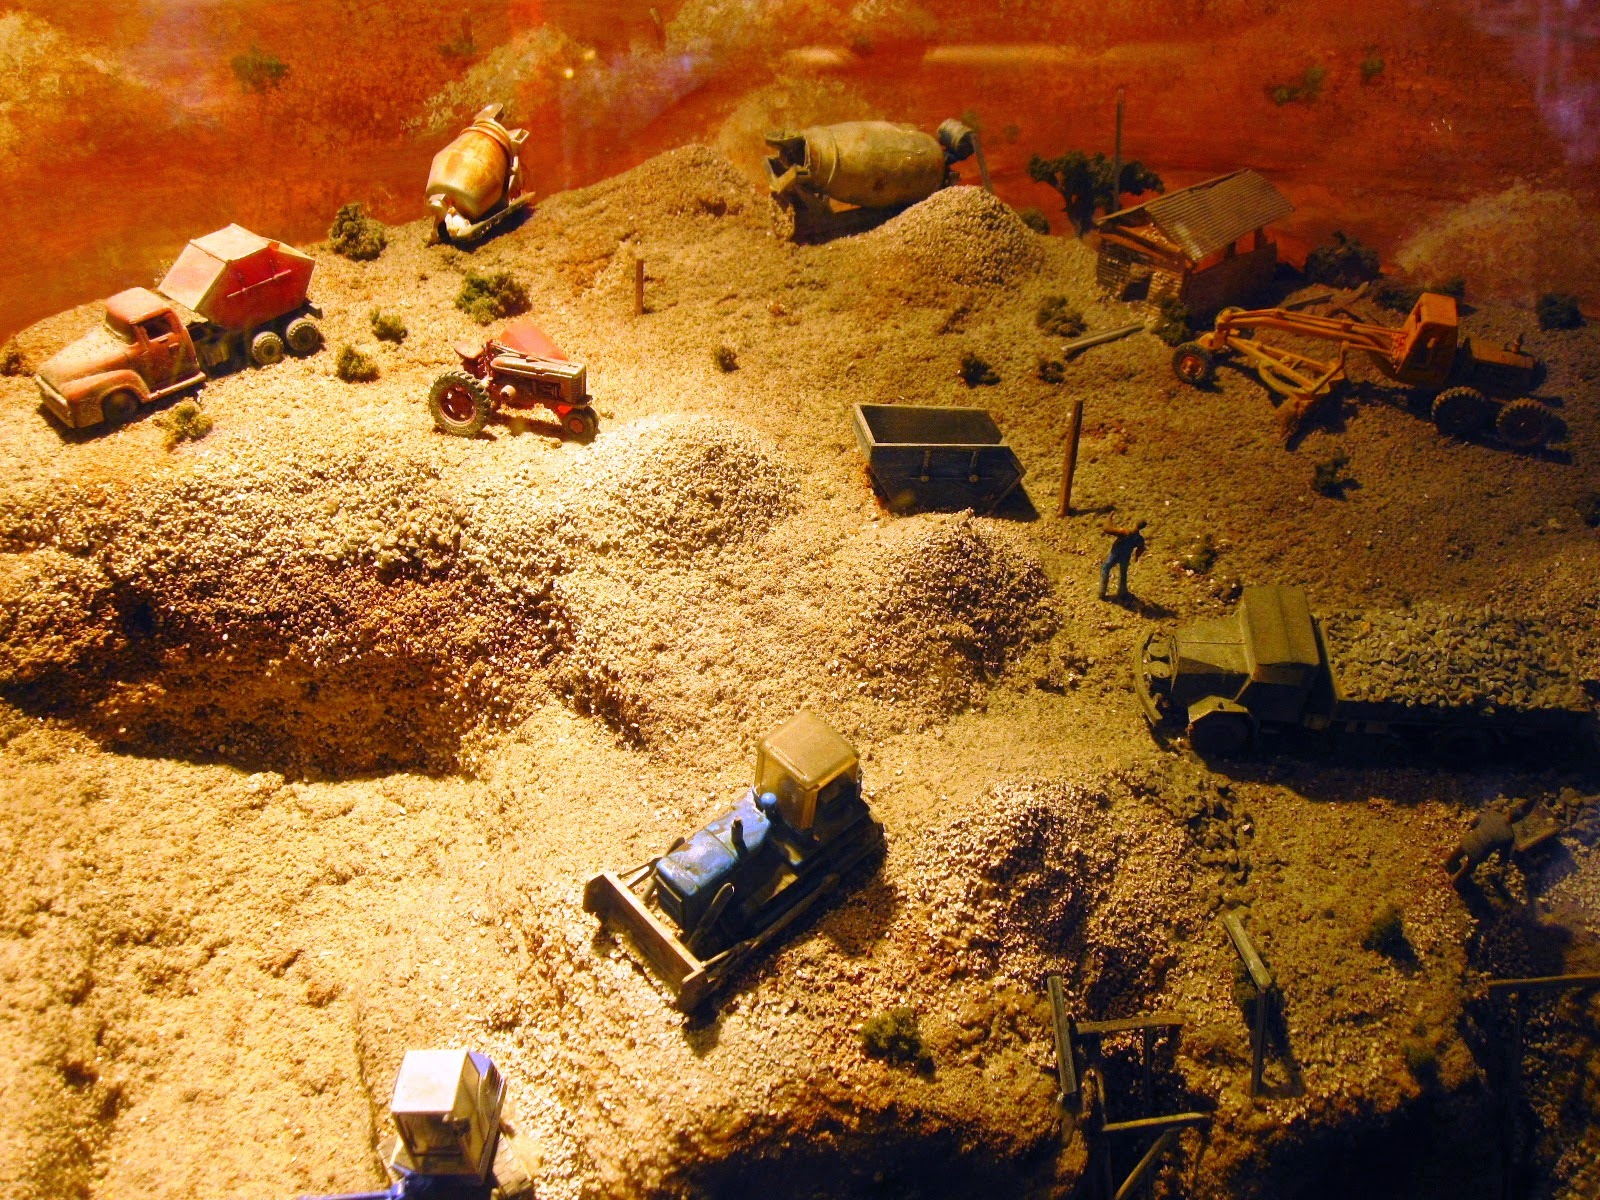 Scale model of an opal mine in a shop window.